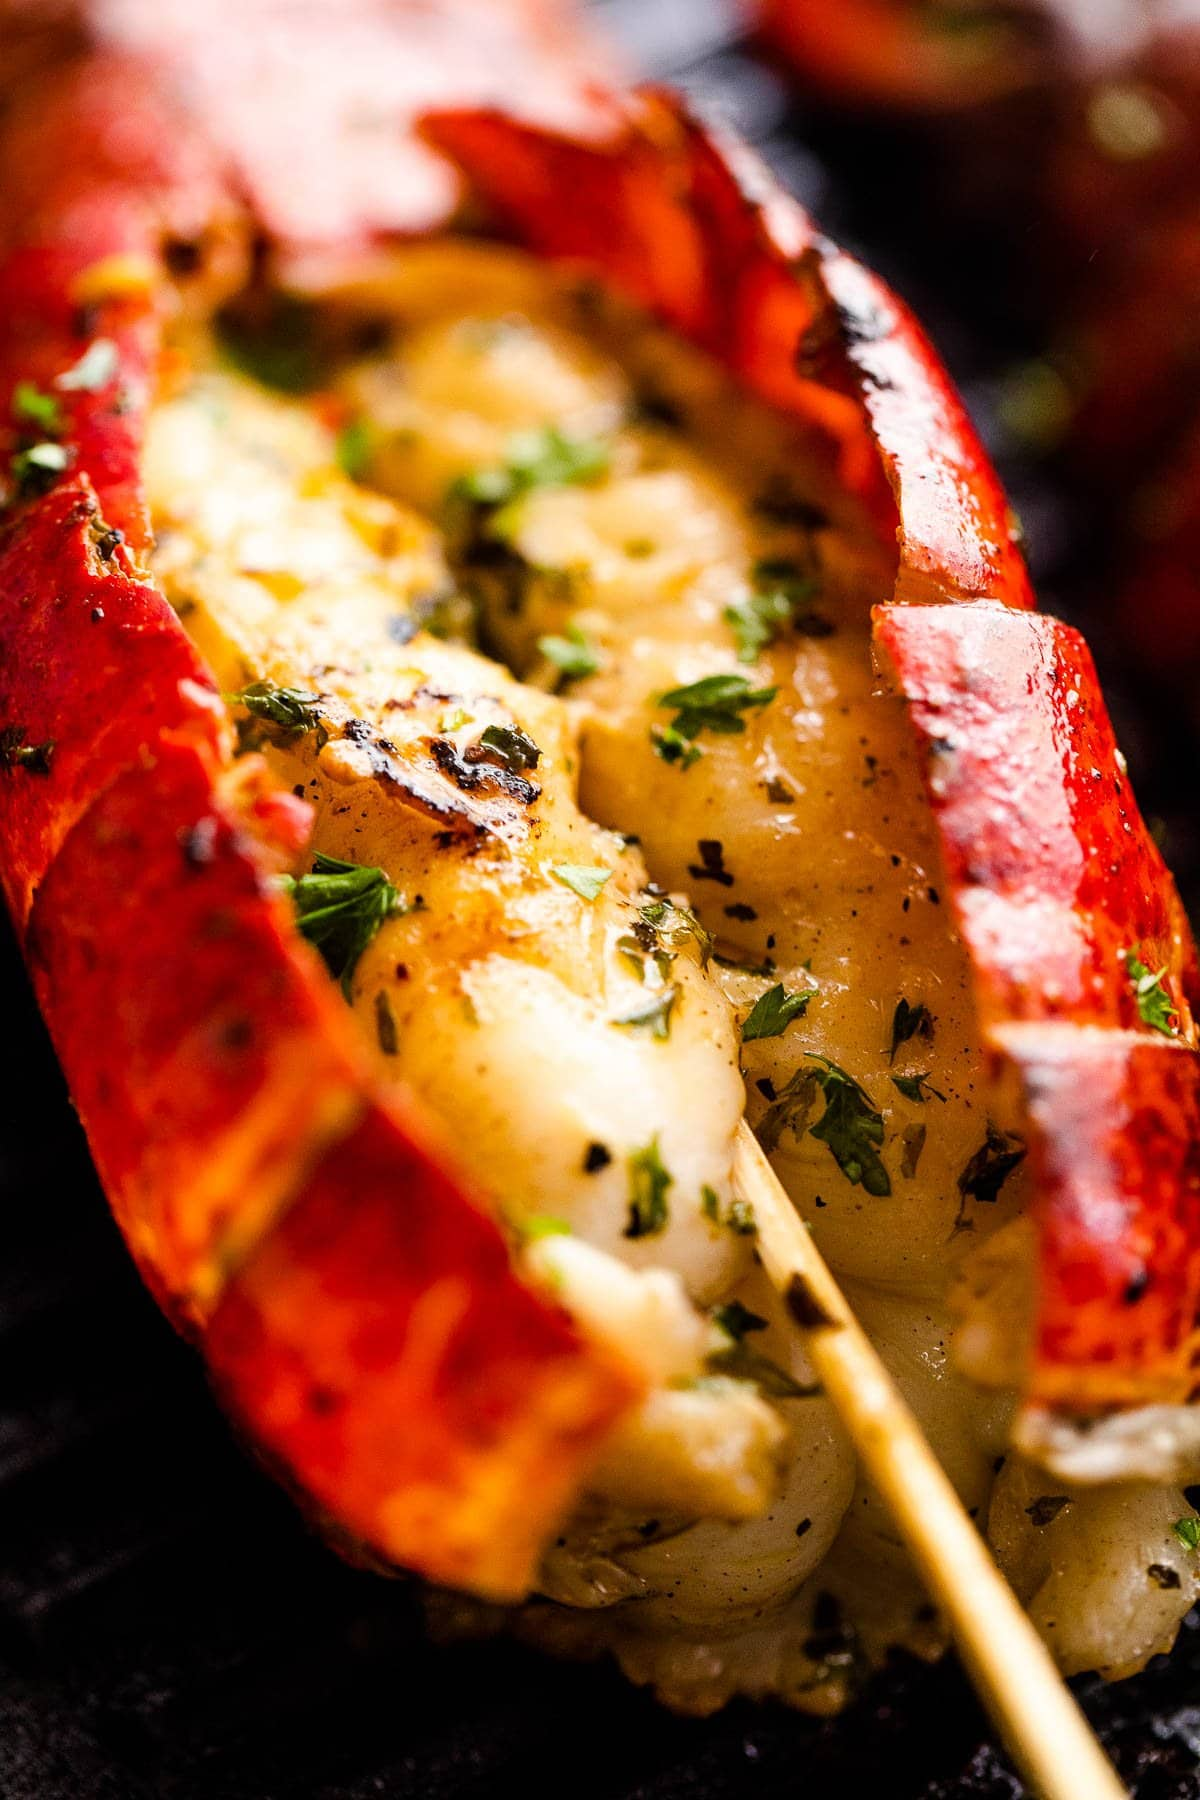 up close shot of a grilled lobster on the grill